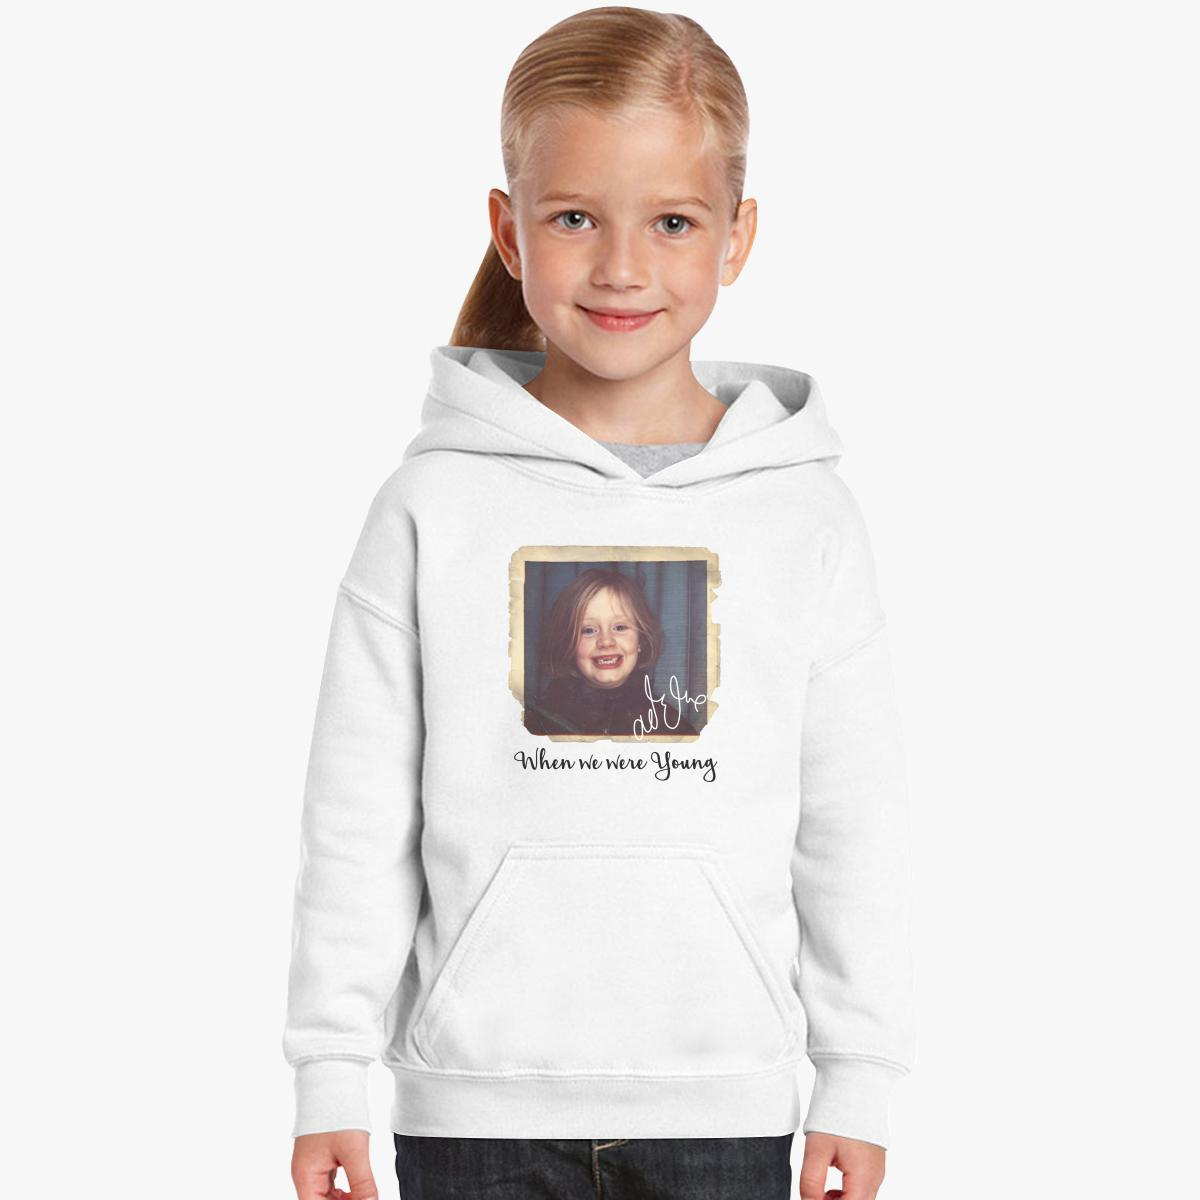 Adele - When We Were Young  Kids Hoodie